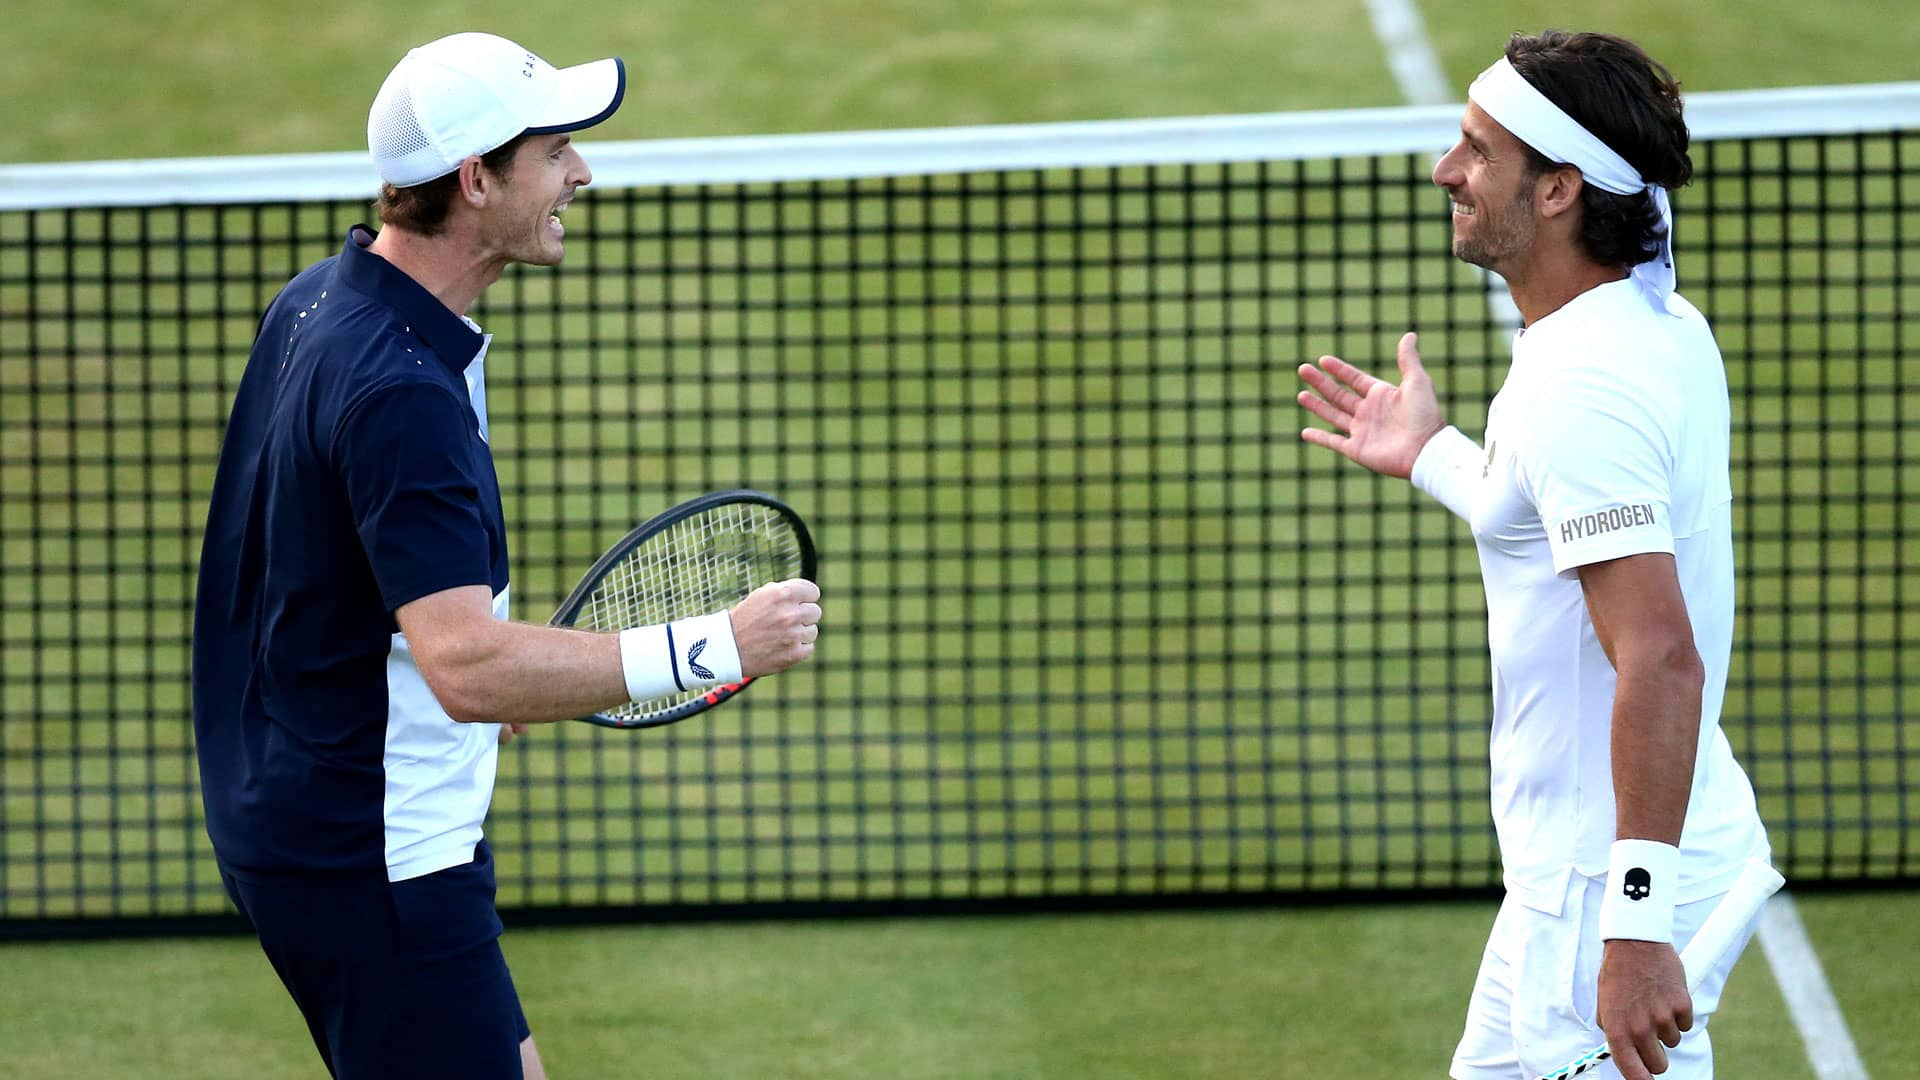 <a href='https://www.atptour.com/en/players/andy-murray/mc10/overview'>Andy Murray</a> and <a href='https://www.atptour.com/en/players/feliciano-lopez/l397/overview'>Feliciano Lopez</a> celebrate at Queen's Club 2019